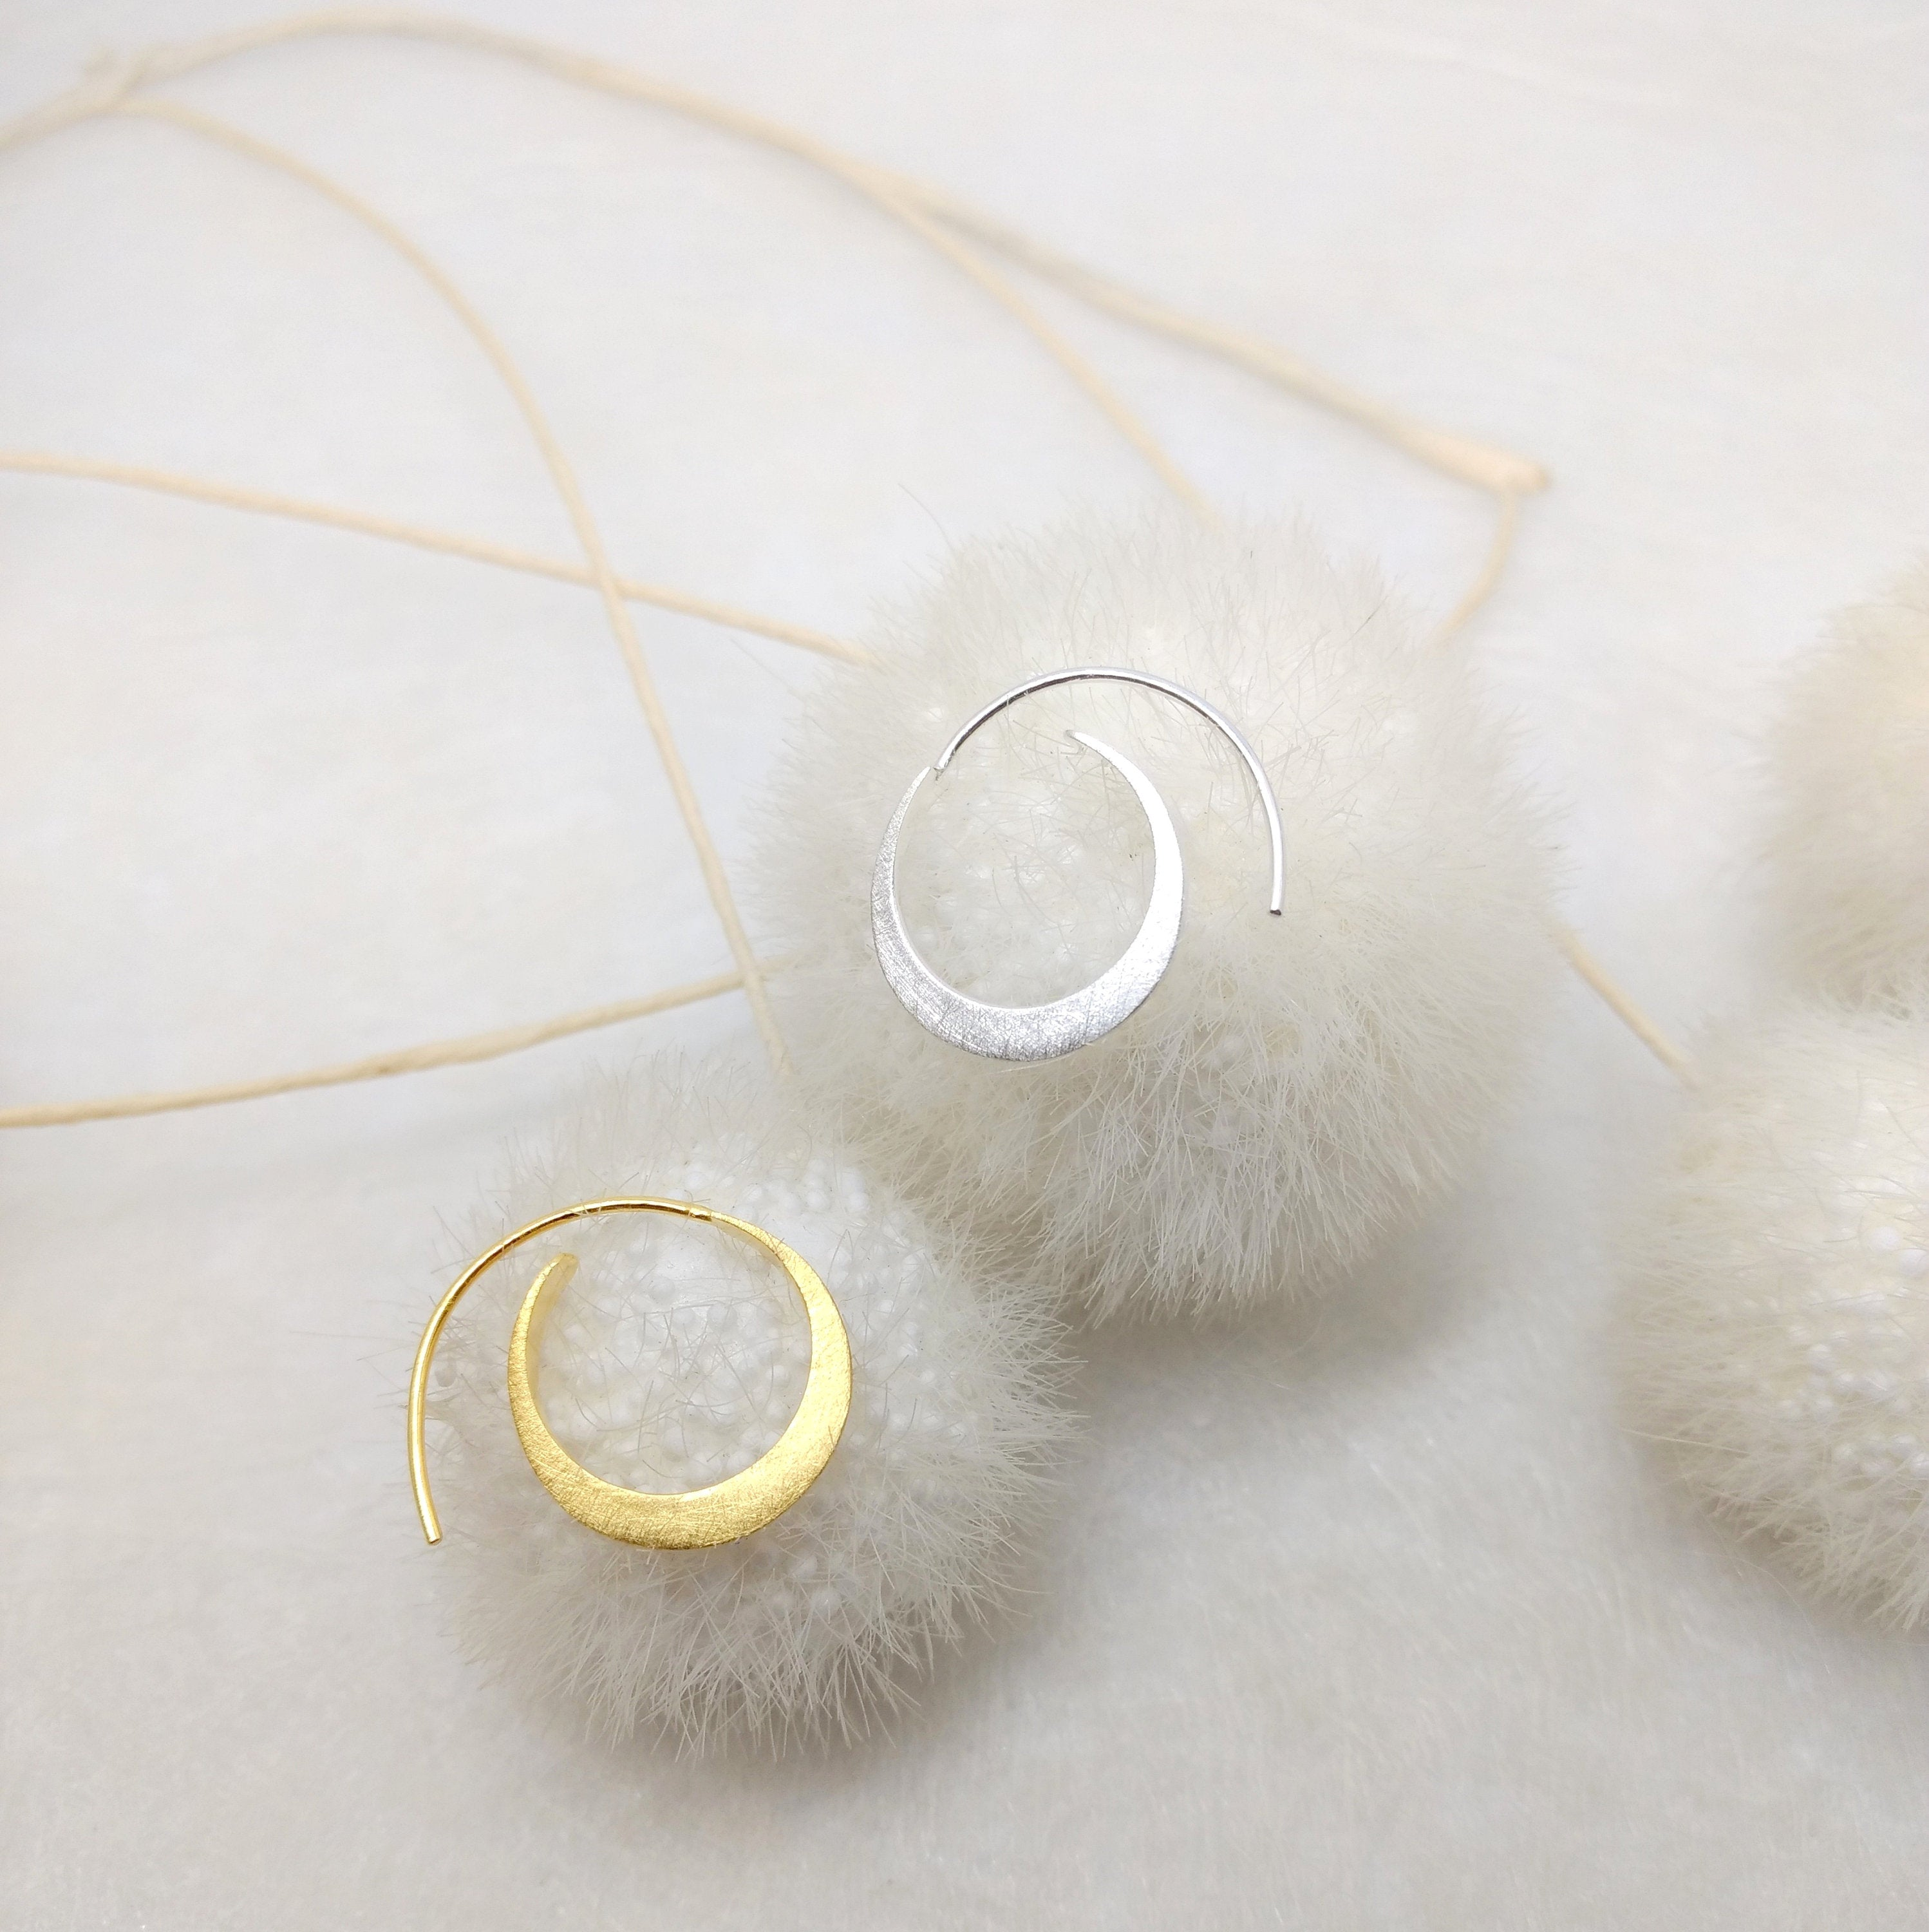 PaKti - small (ø 20mm) hoops in silver or silver gold plated